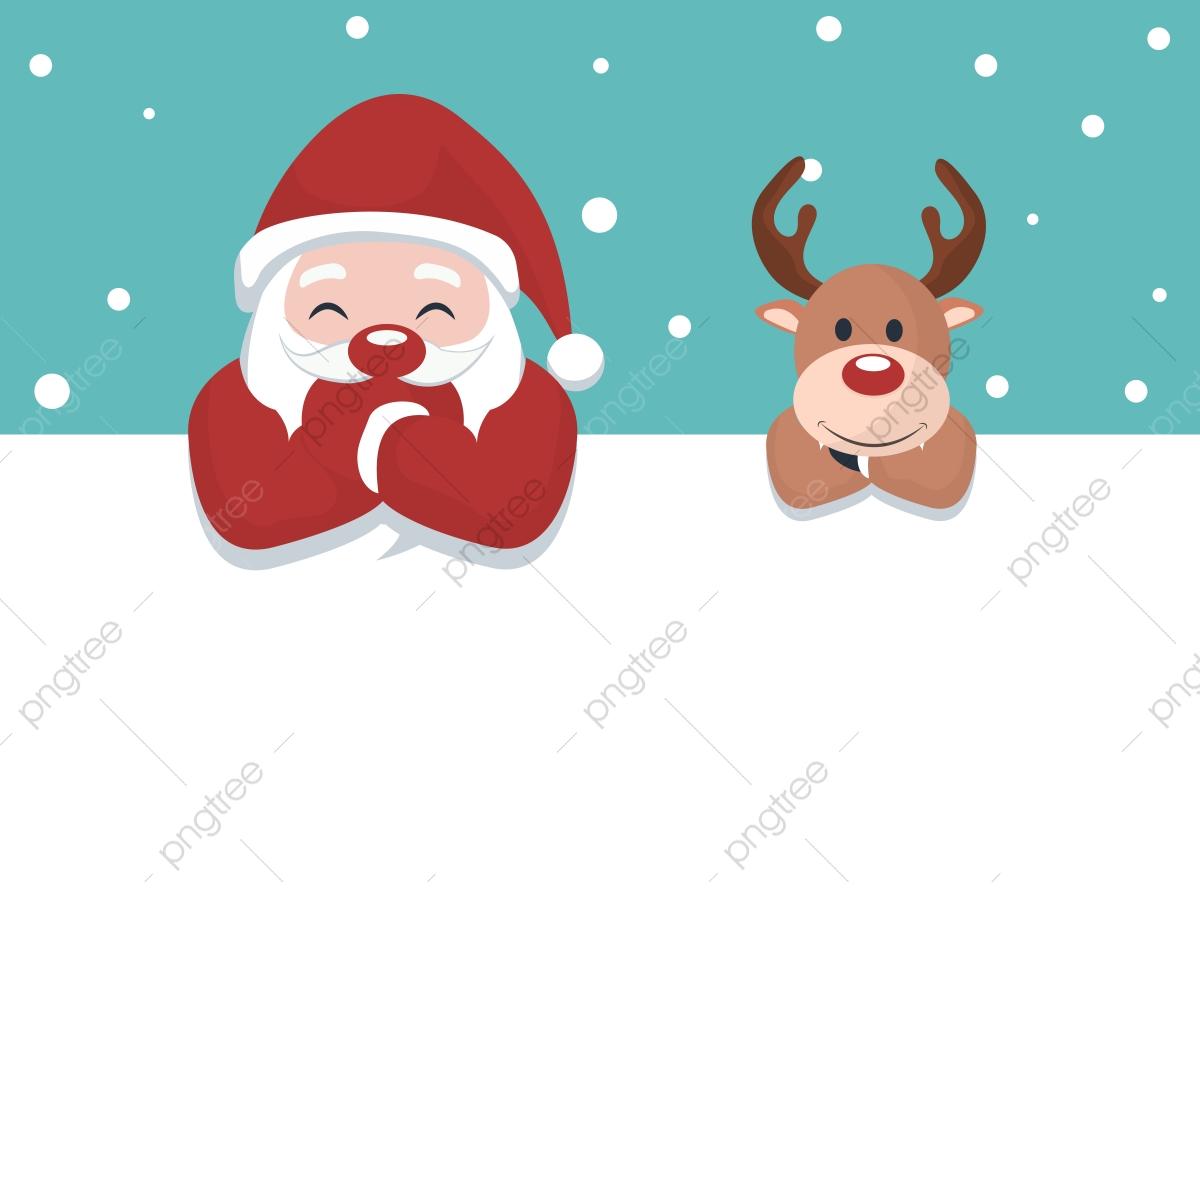 Christmas Card Of Santa Claus And Reindeer On White Poster.